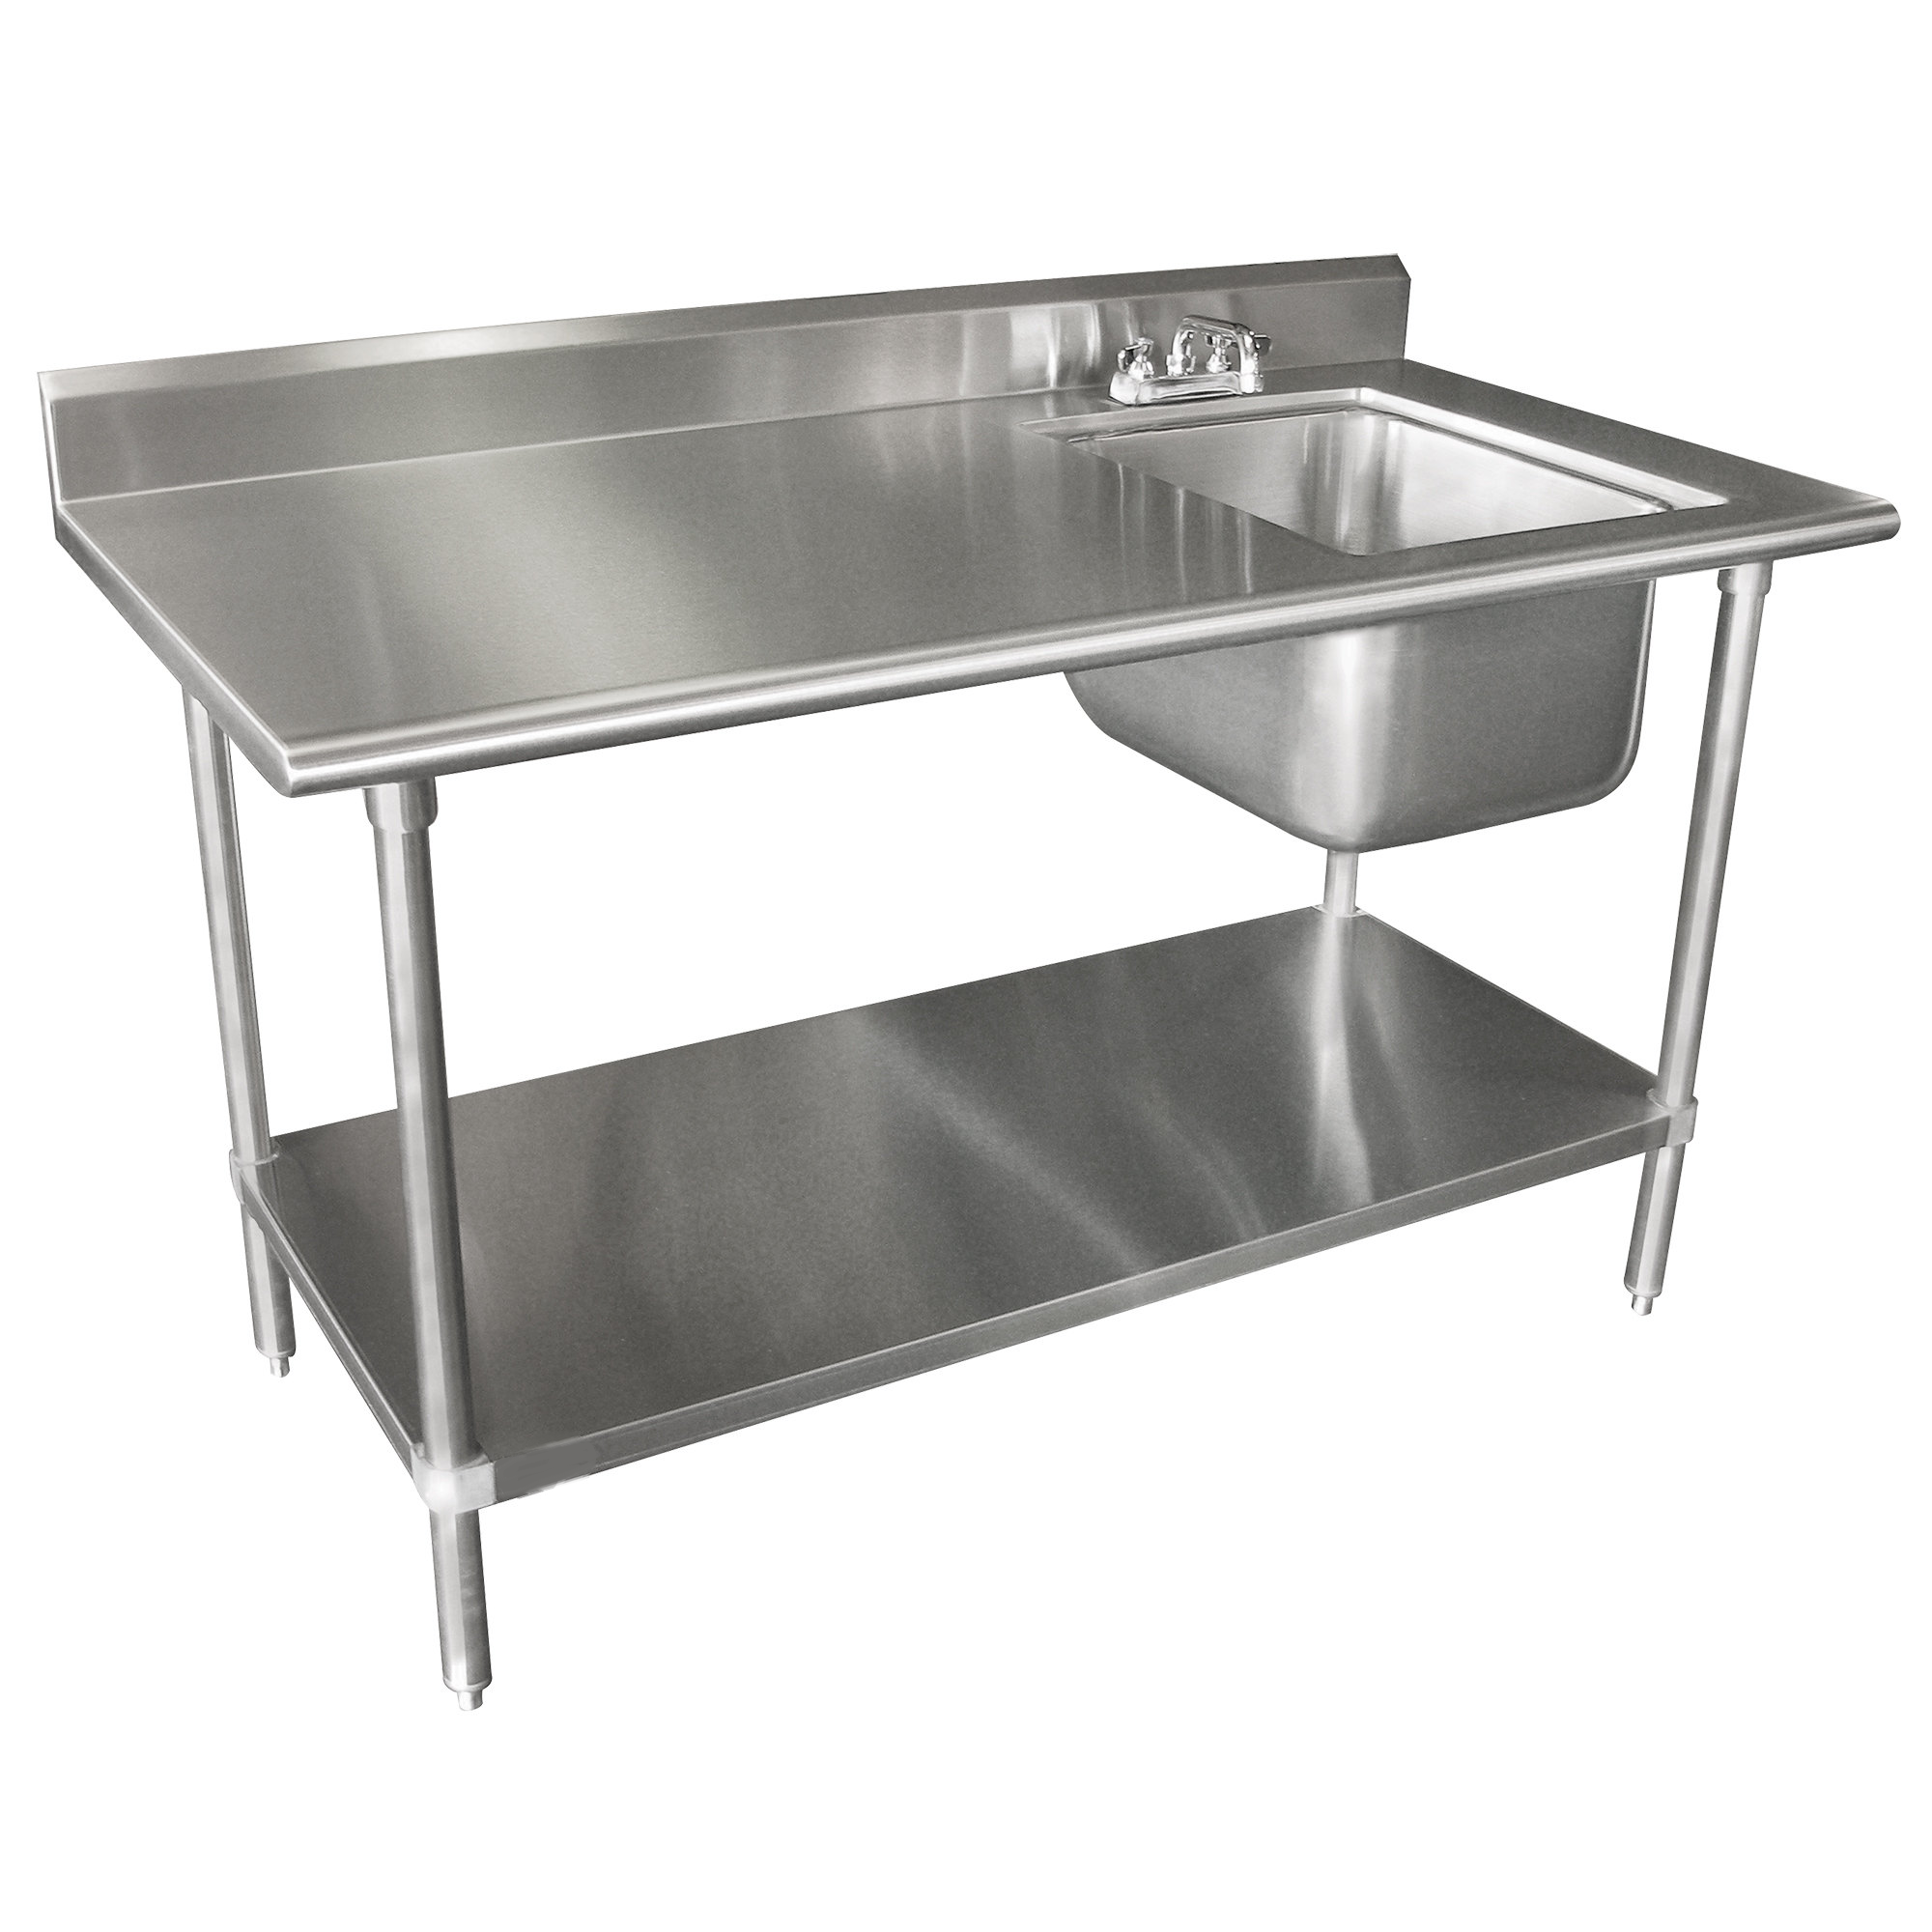 Pin By Travis Willman On My Work In 2020 Stainless Steel Work Table Stainless Steel Table Work Table